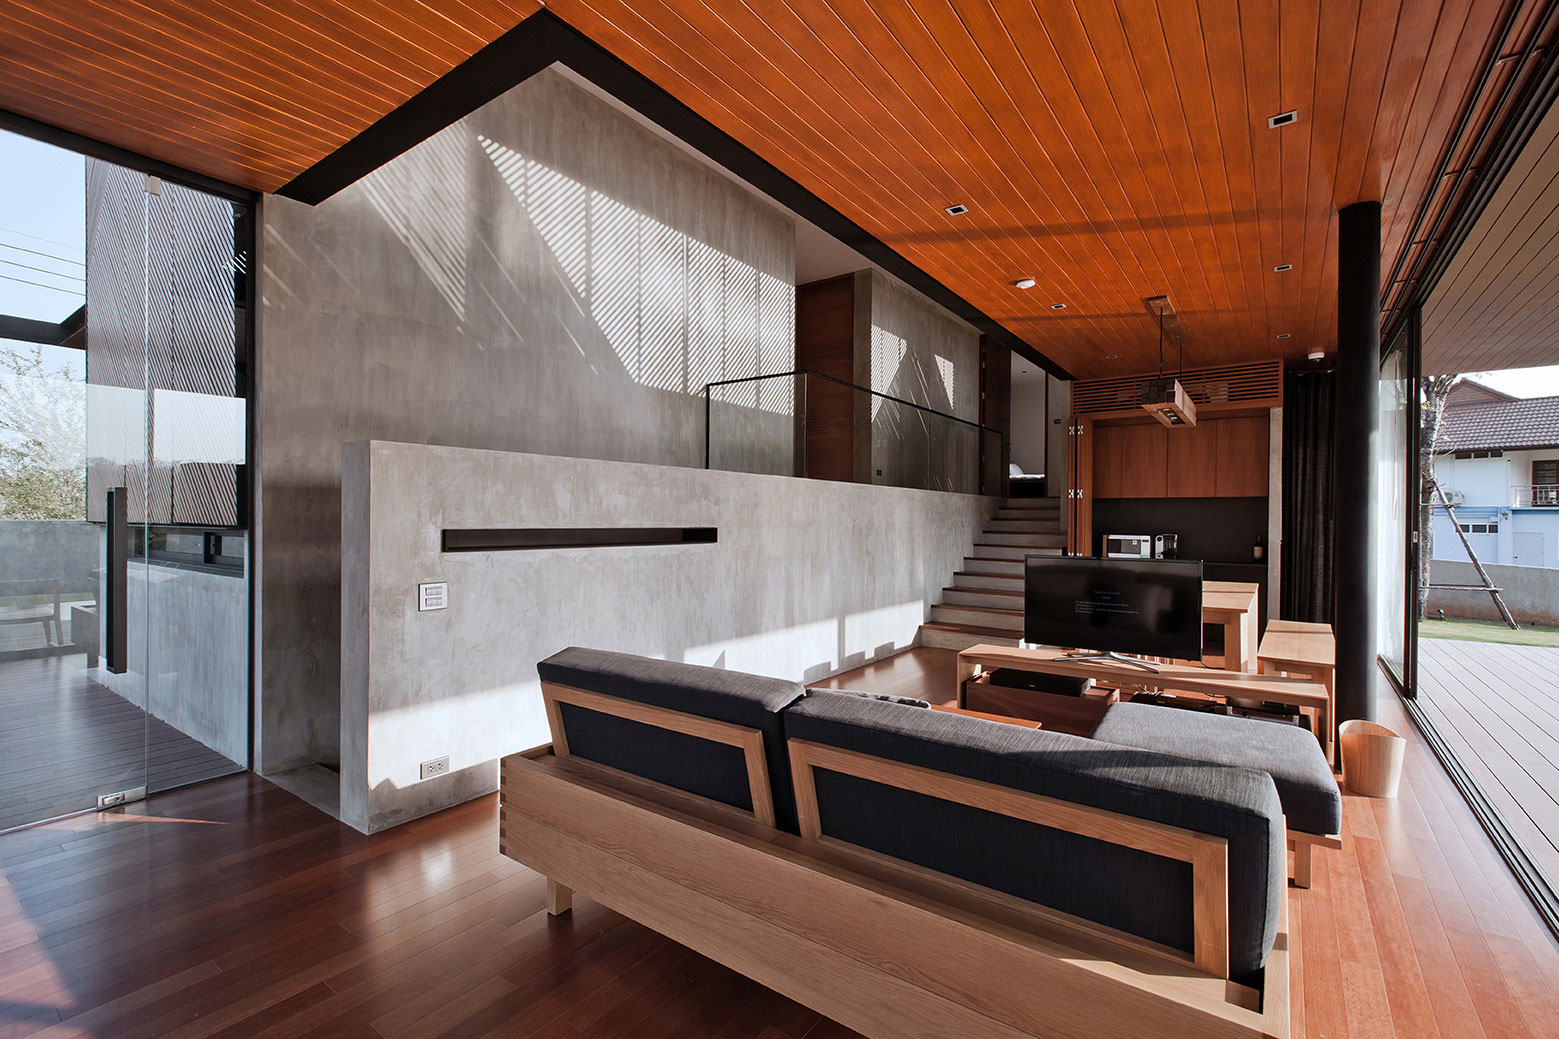 living room made by concrete and wood